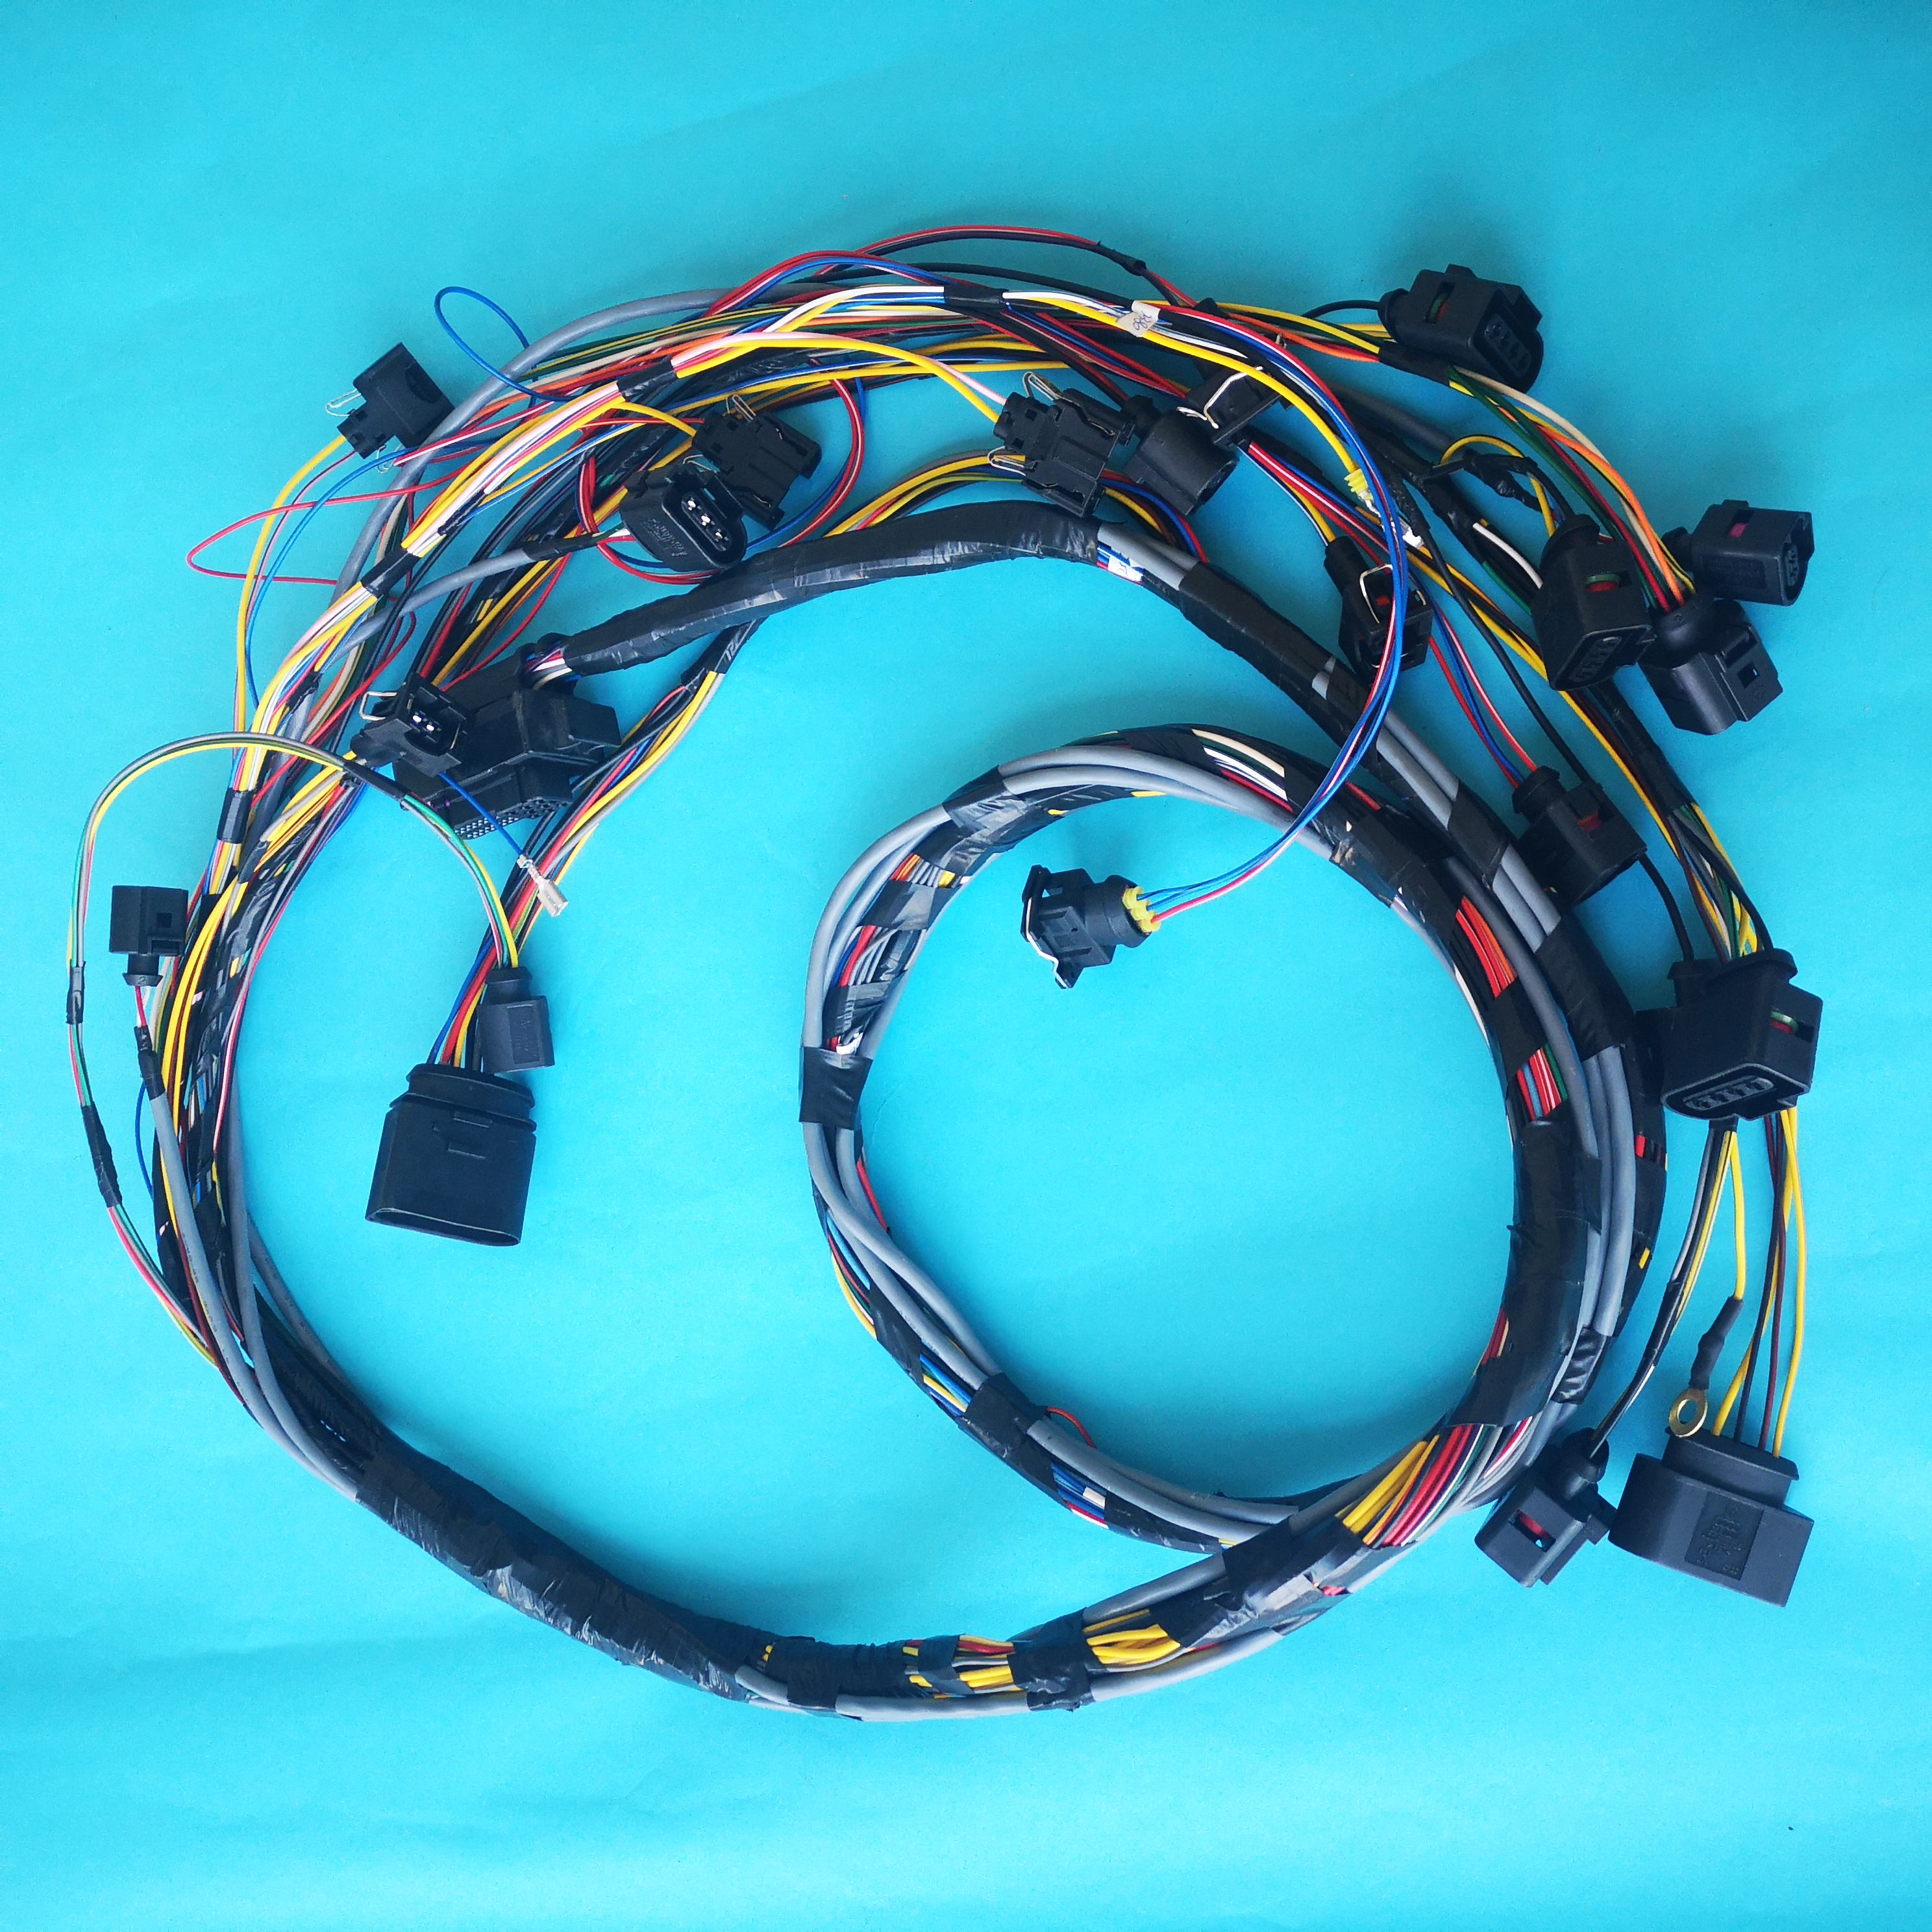 Customized Car Engine Wire Looms OEM ODM Automotive Repair Cable Assembly For VW/BMW/AUDI/Porsche Vehicle